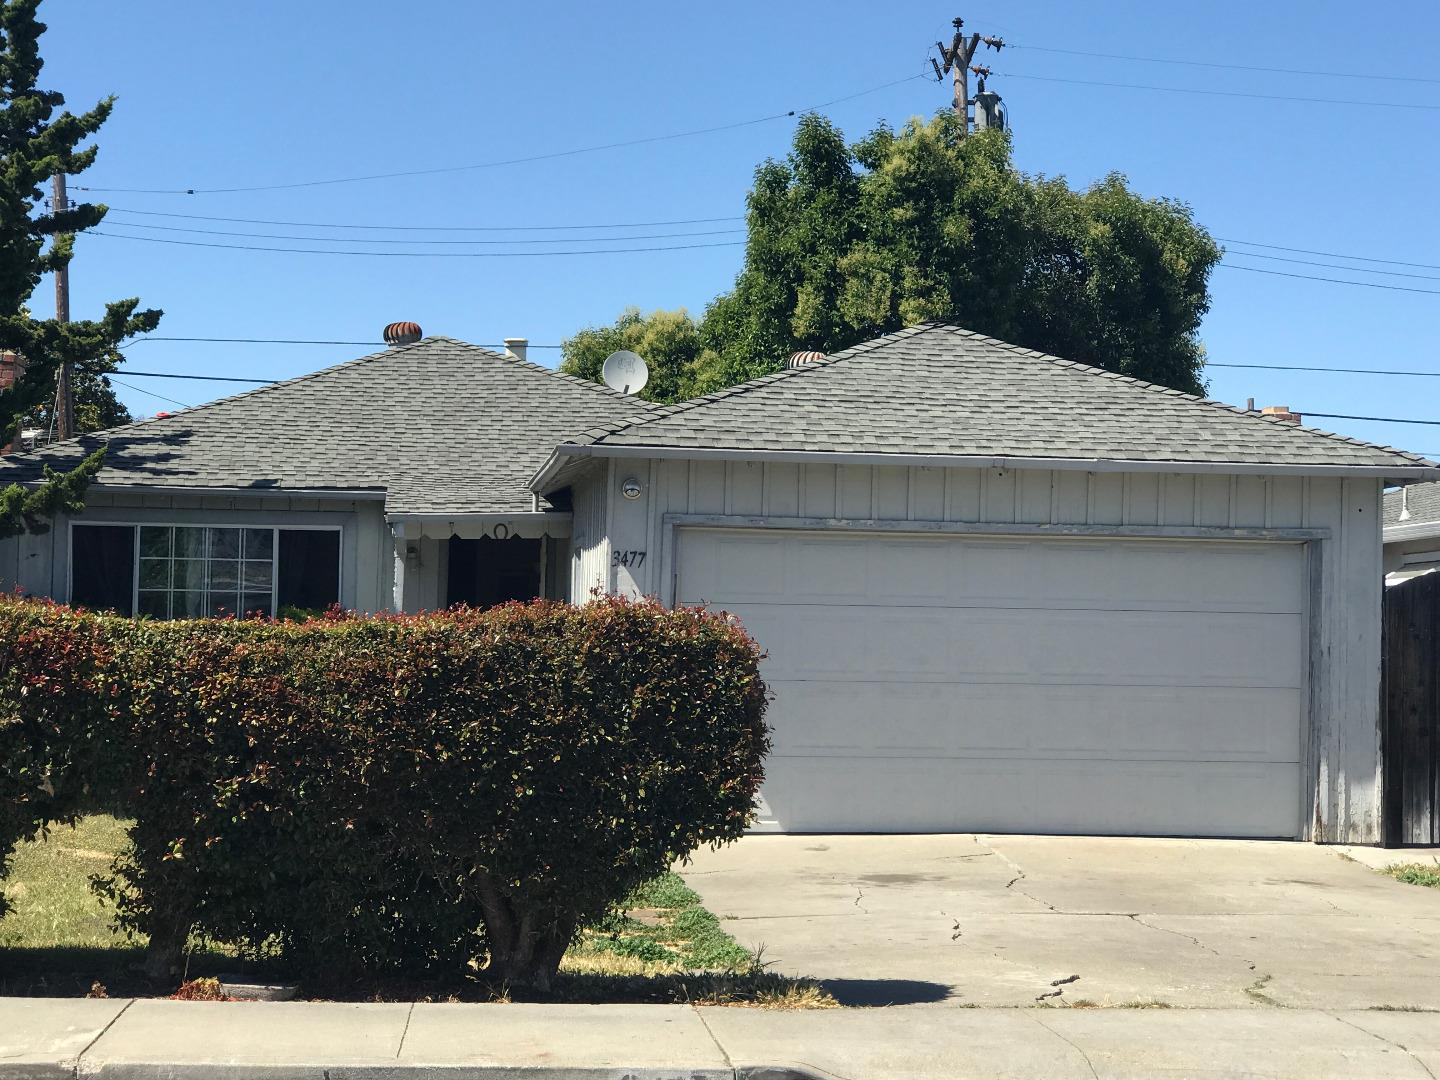 Additional photo for property listing at 3477 Warburton Avenue  Santa Clara, California 95051 Estados Unidos